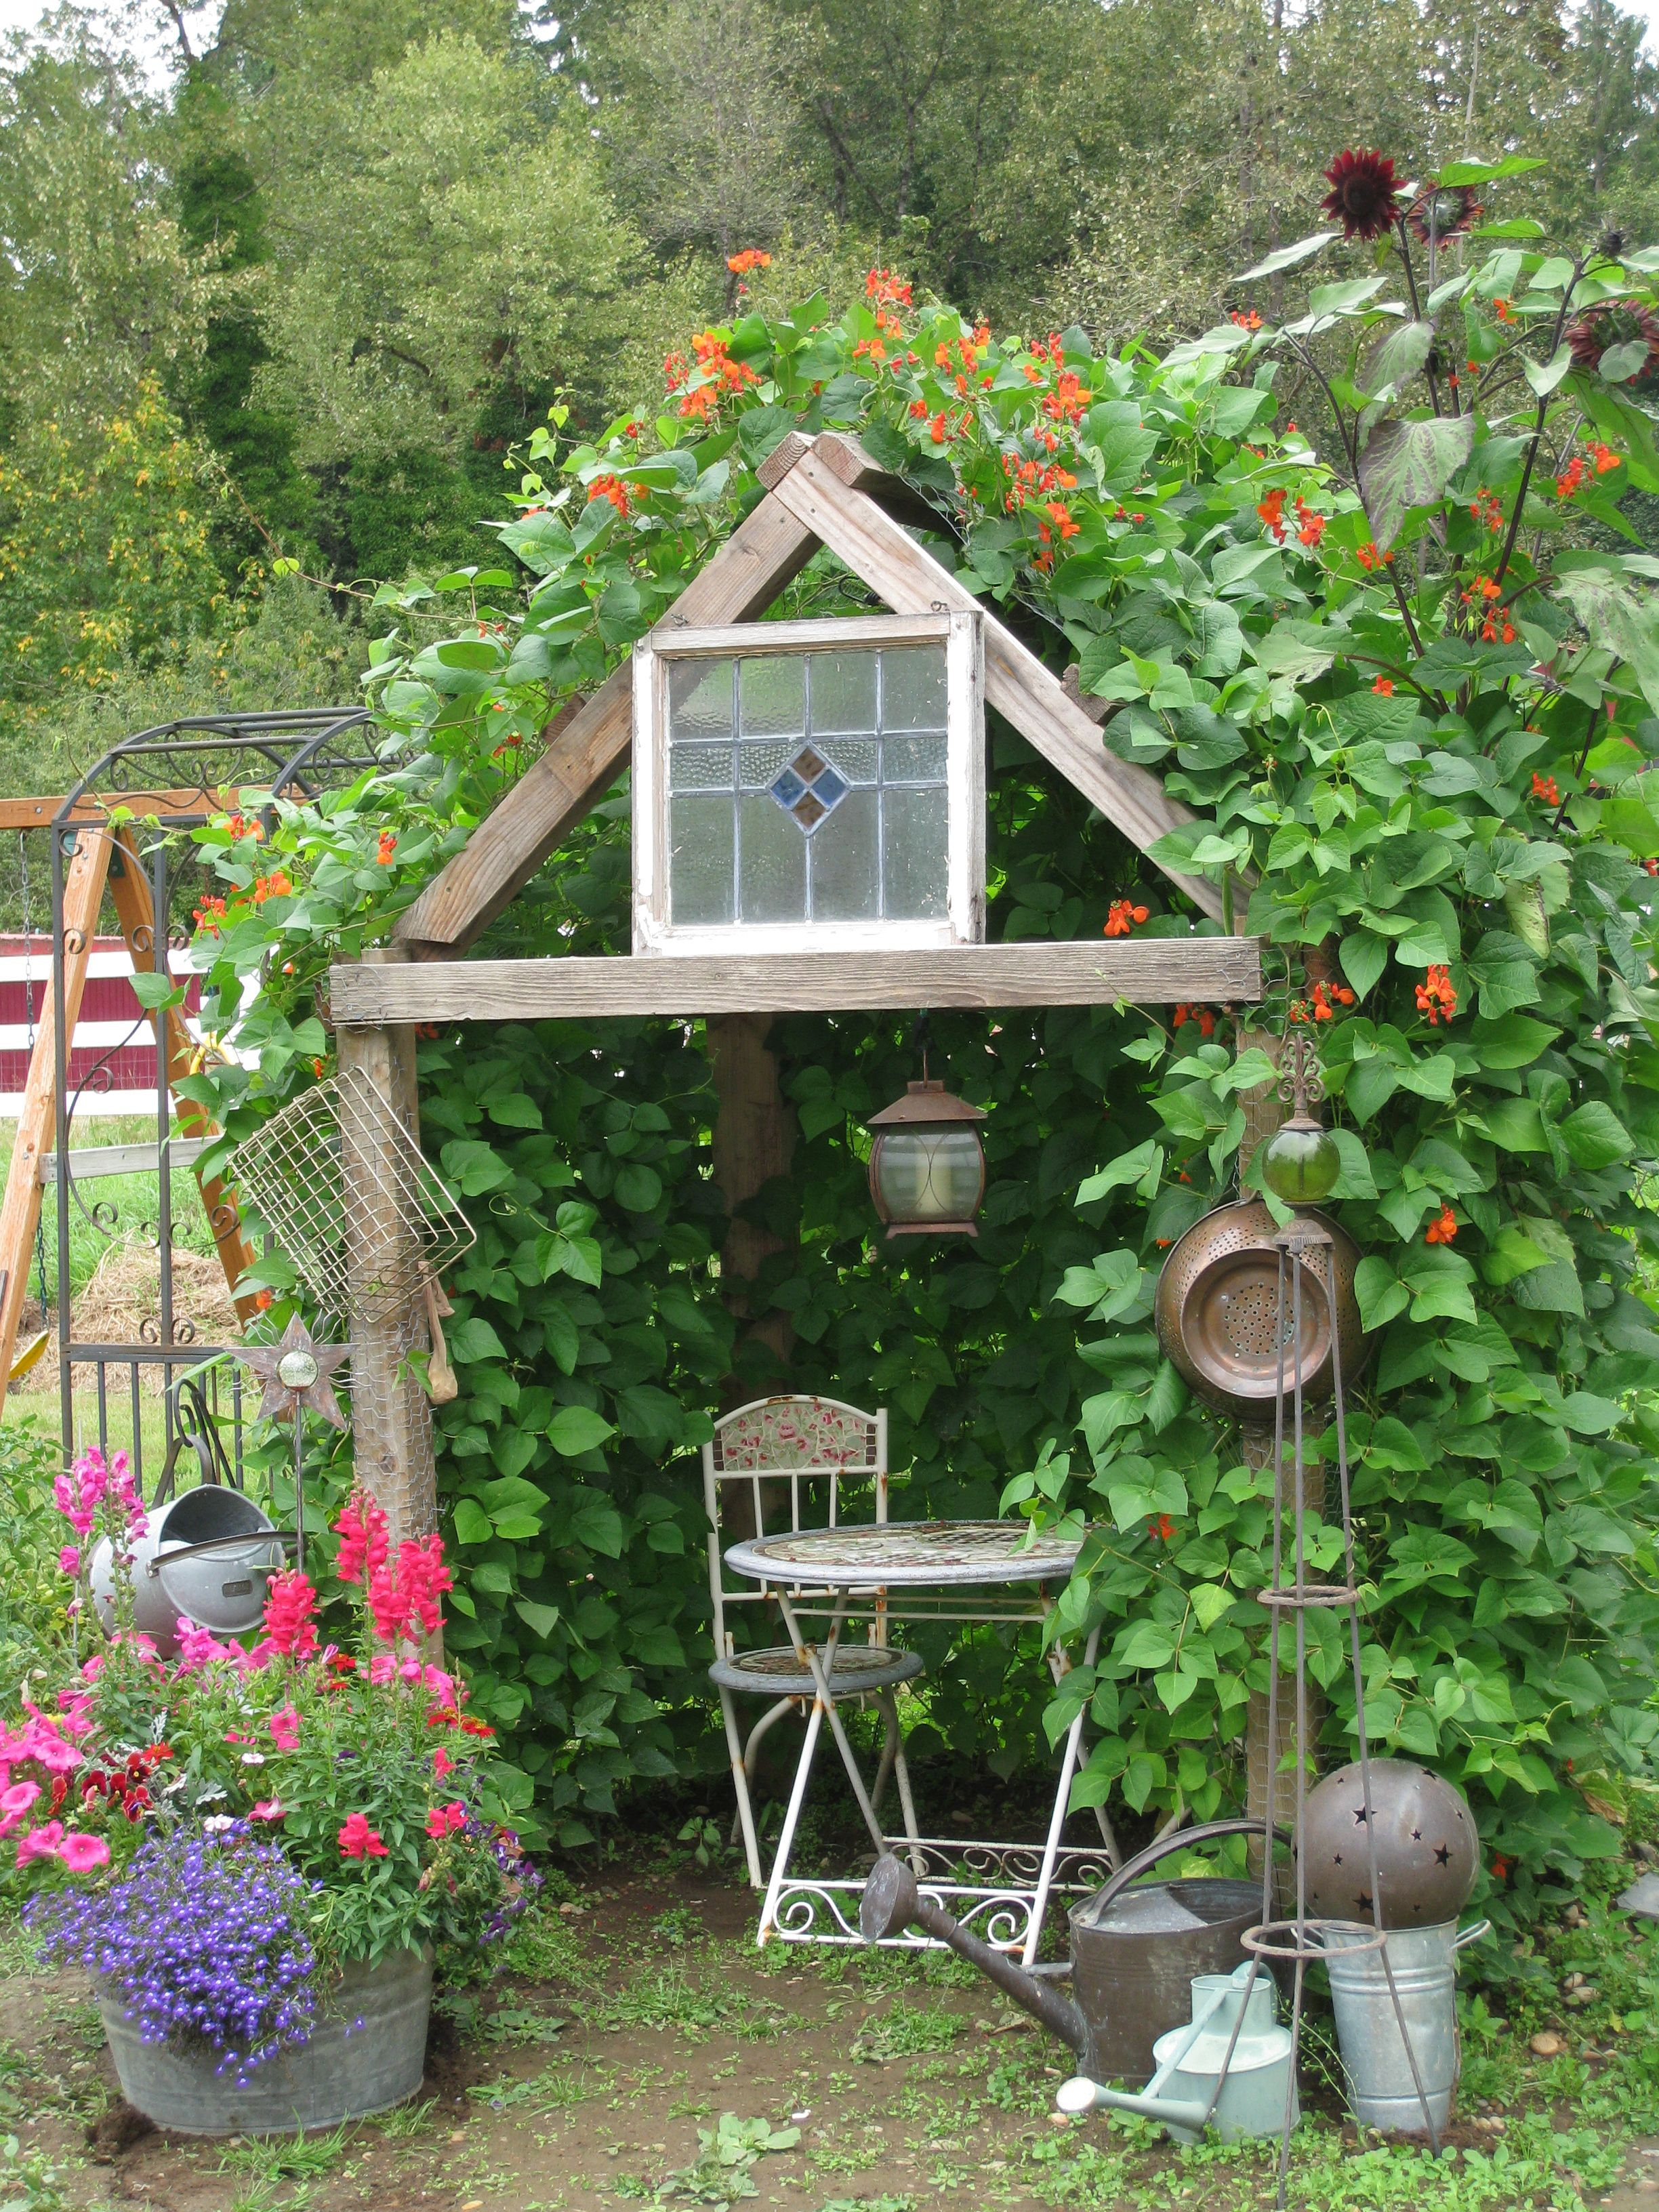 My Bean House We Built A Primitive Frame Covered With Chicken Wire And Let Scarlet Runner Beans Take Ove Garden Inspiration Amazing Gardens Whimsical Garden